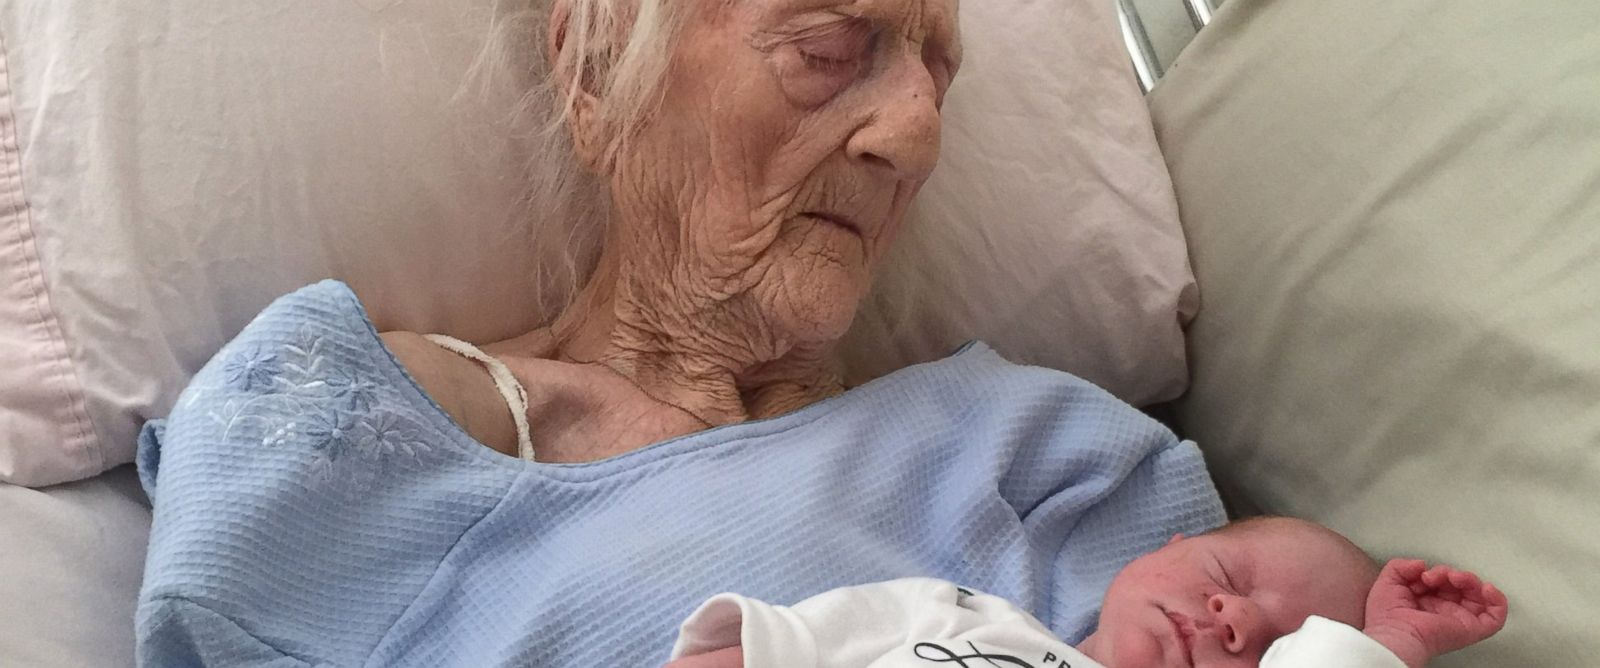 PHOTO: Rosa Camfield, 101, passed away on March 30, 2015 after this photo went viral online.